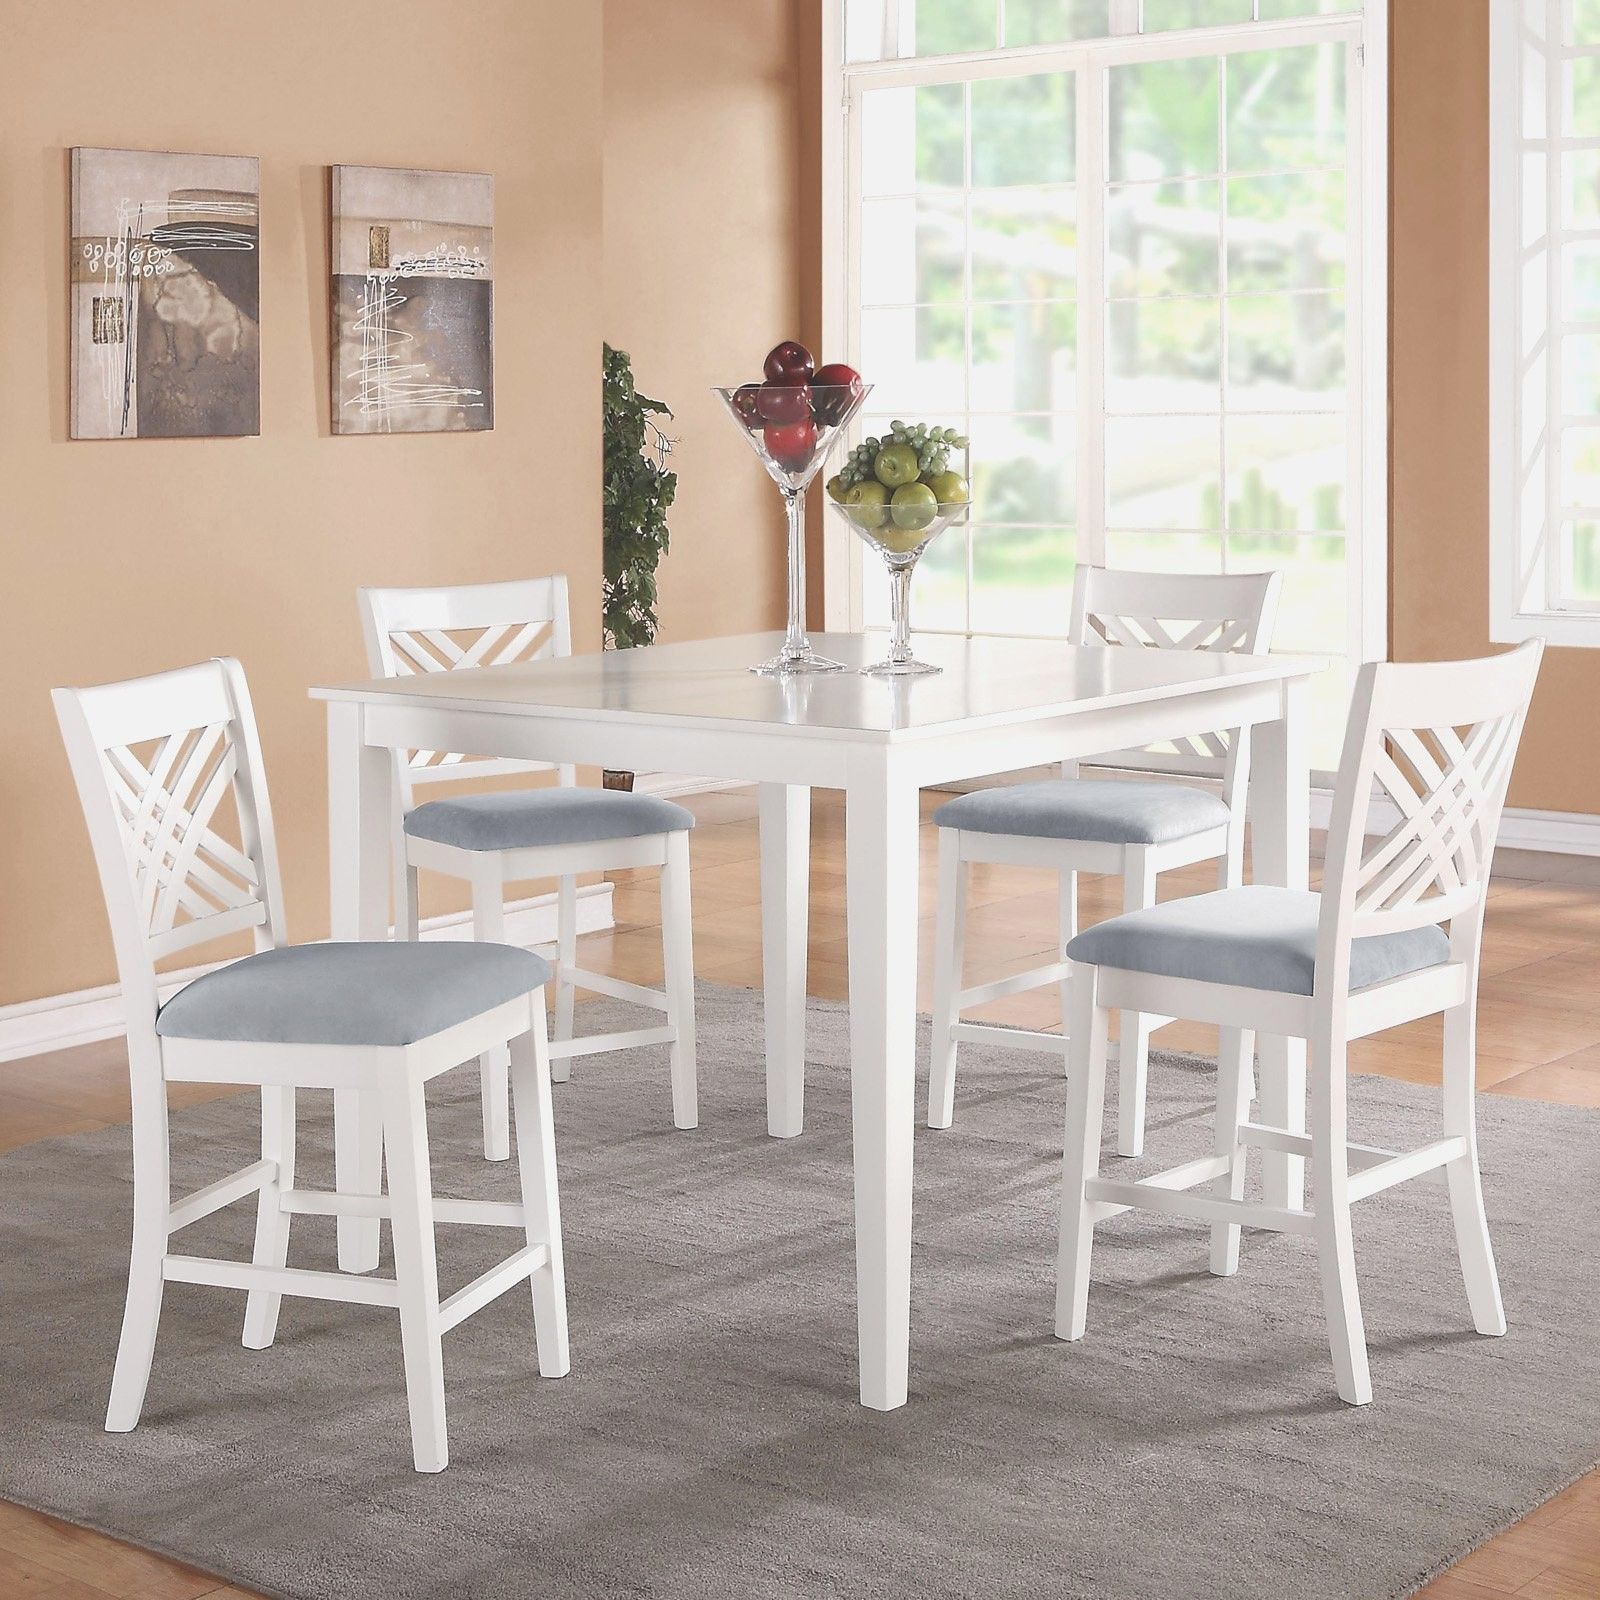 White kitchen table and chairs all white kitchen table and chairs white kitchen table and chairs all white kitchen table and chairs grey and white workwithnaturefo